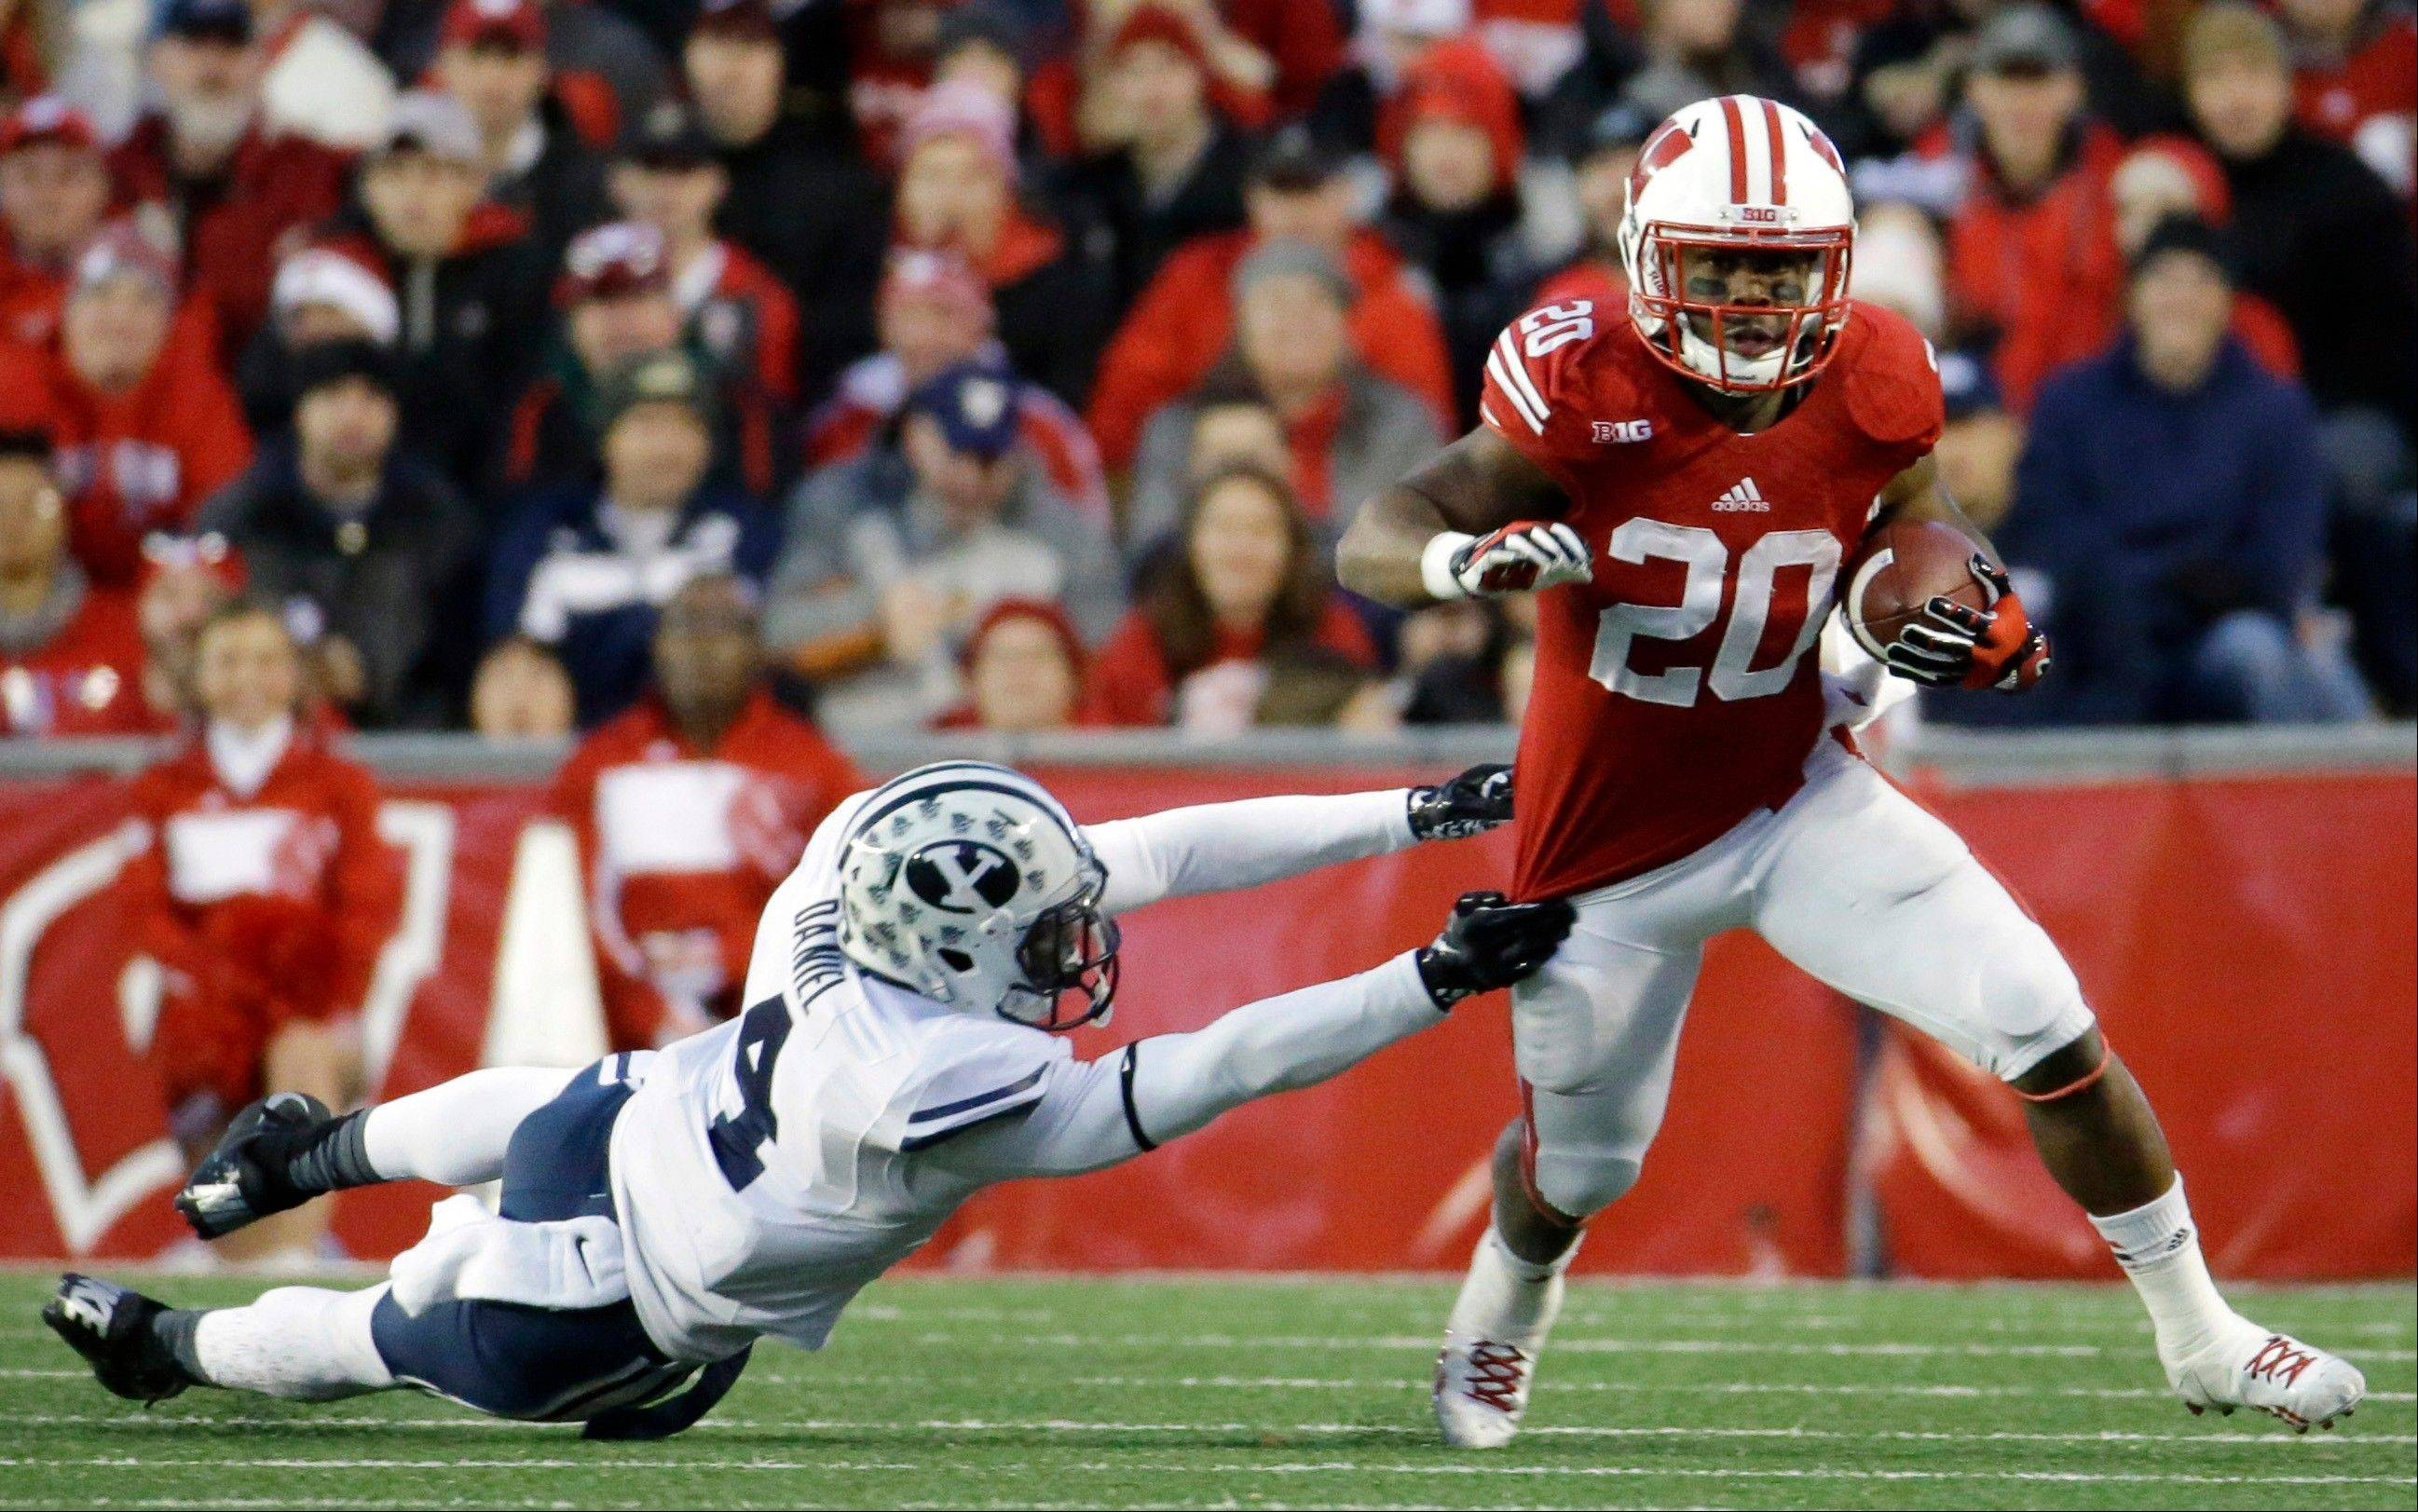 Senior Wisconsin running back James White is looking for his first bowl game win.